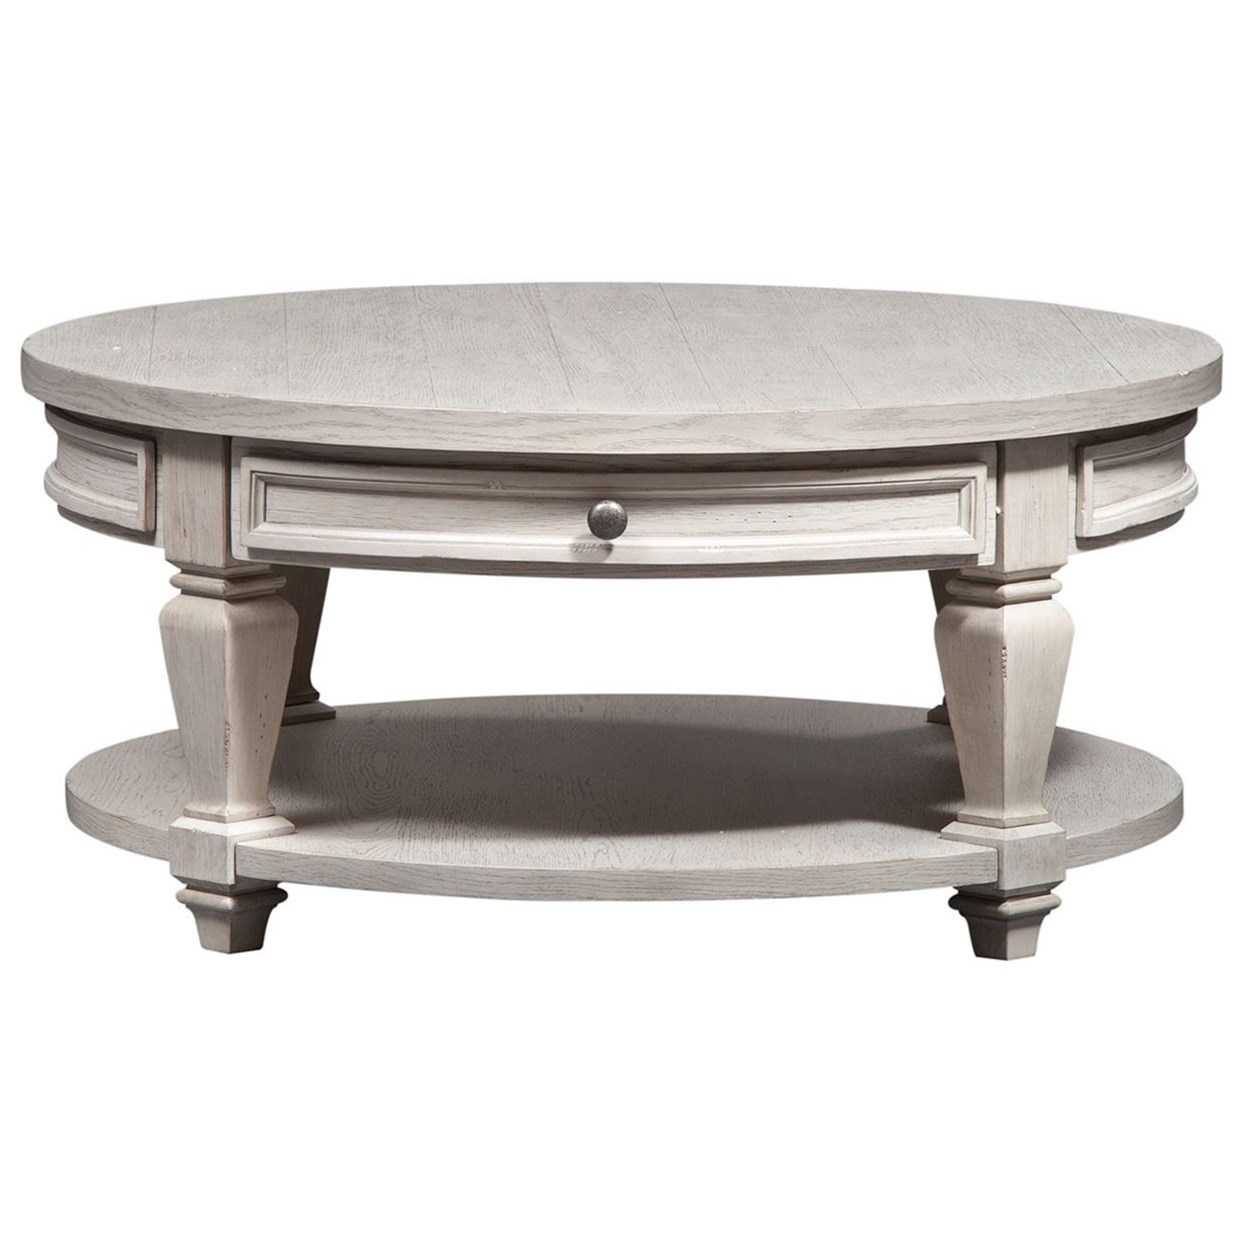 Harvest Home Round Cocktail Table by Libby at Walker's Furniture